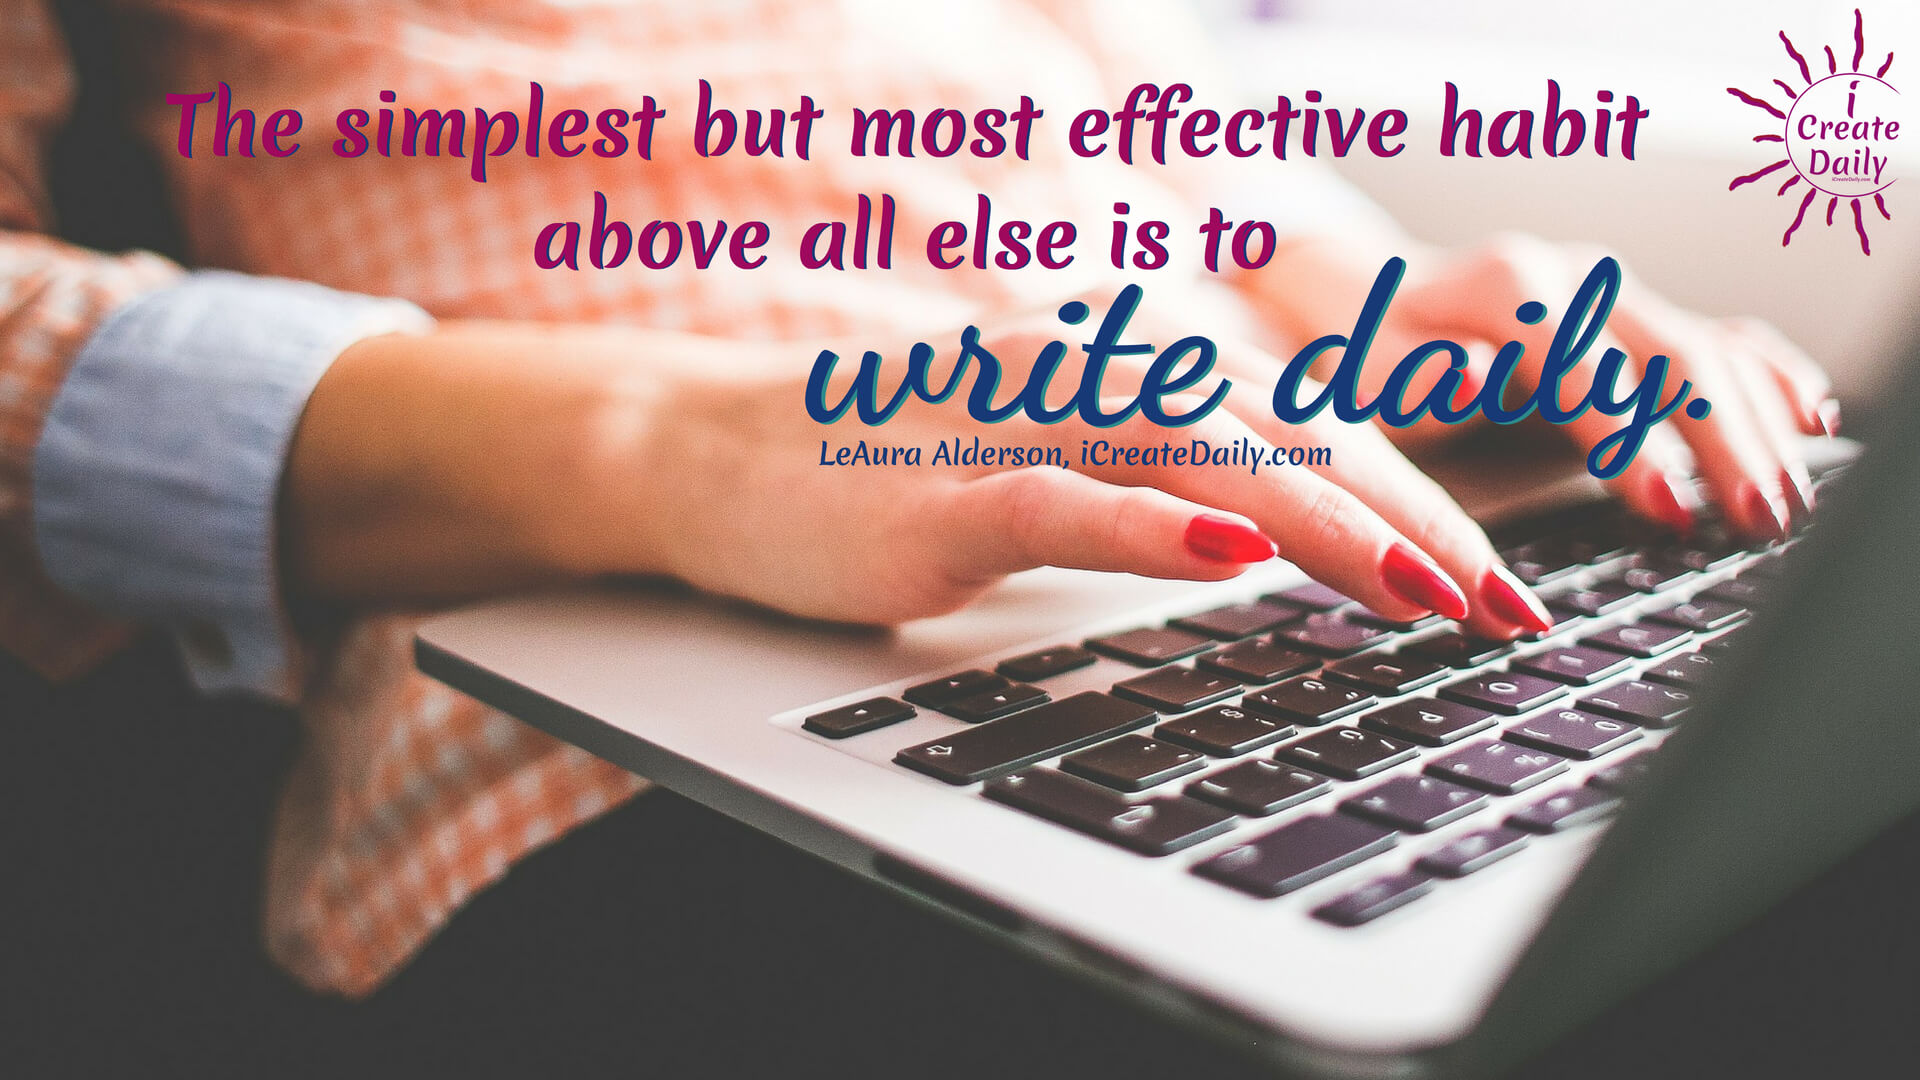 The Most Effective Habit is to Write Daily